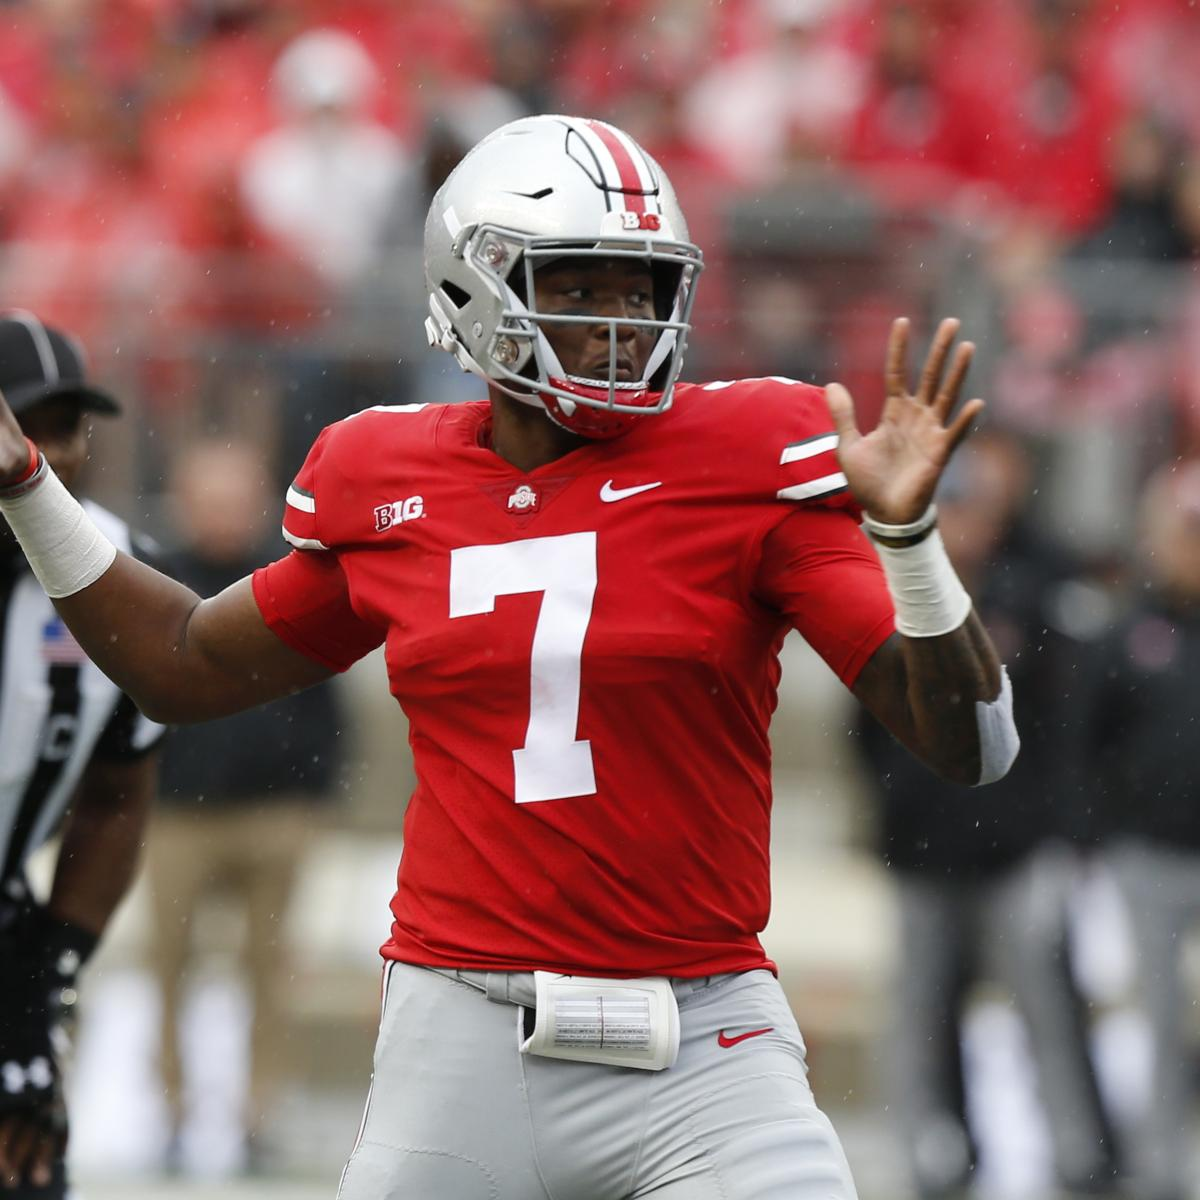 Ohio State Buckeyes vs. TCU Horned Frogs  Odds e302f1d62